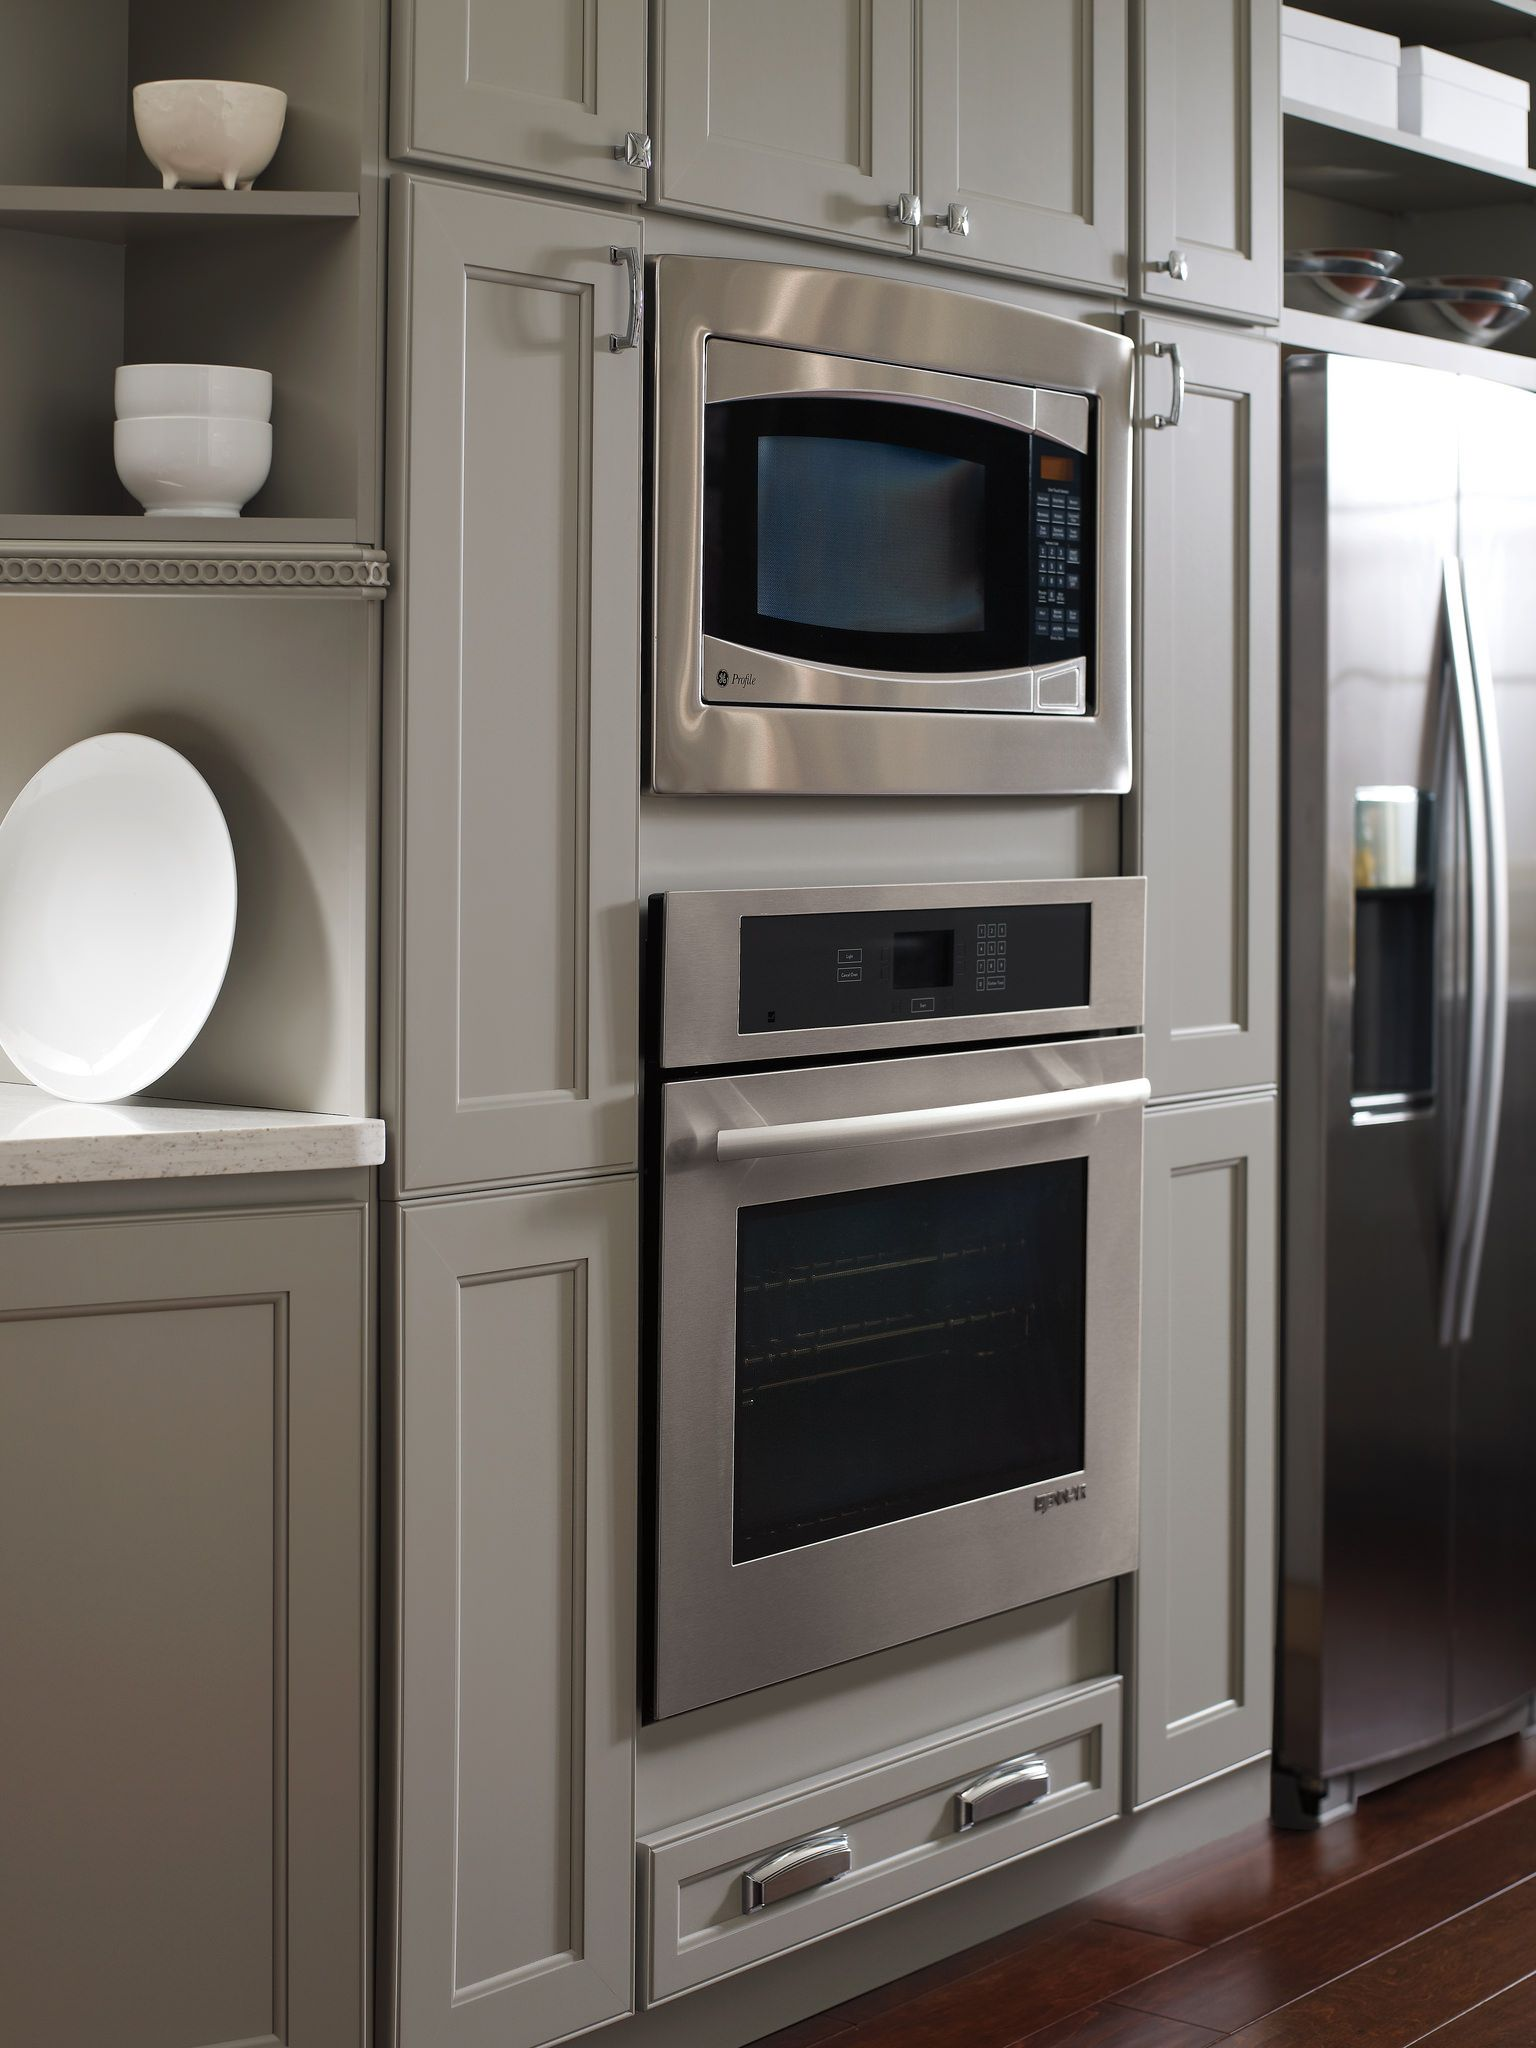 Appliance Cabinets Amp Aplliance Panels Wall Oven Oven